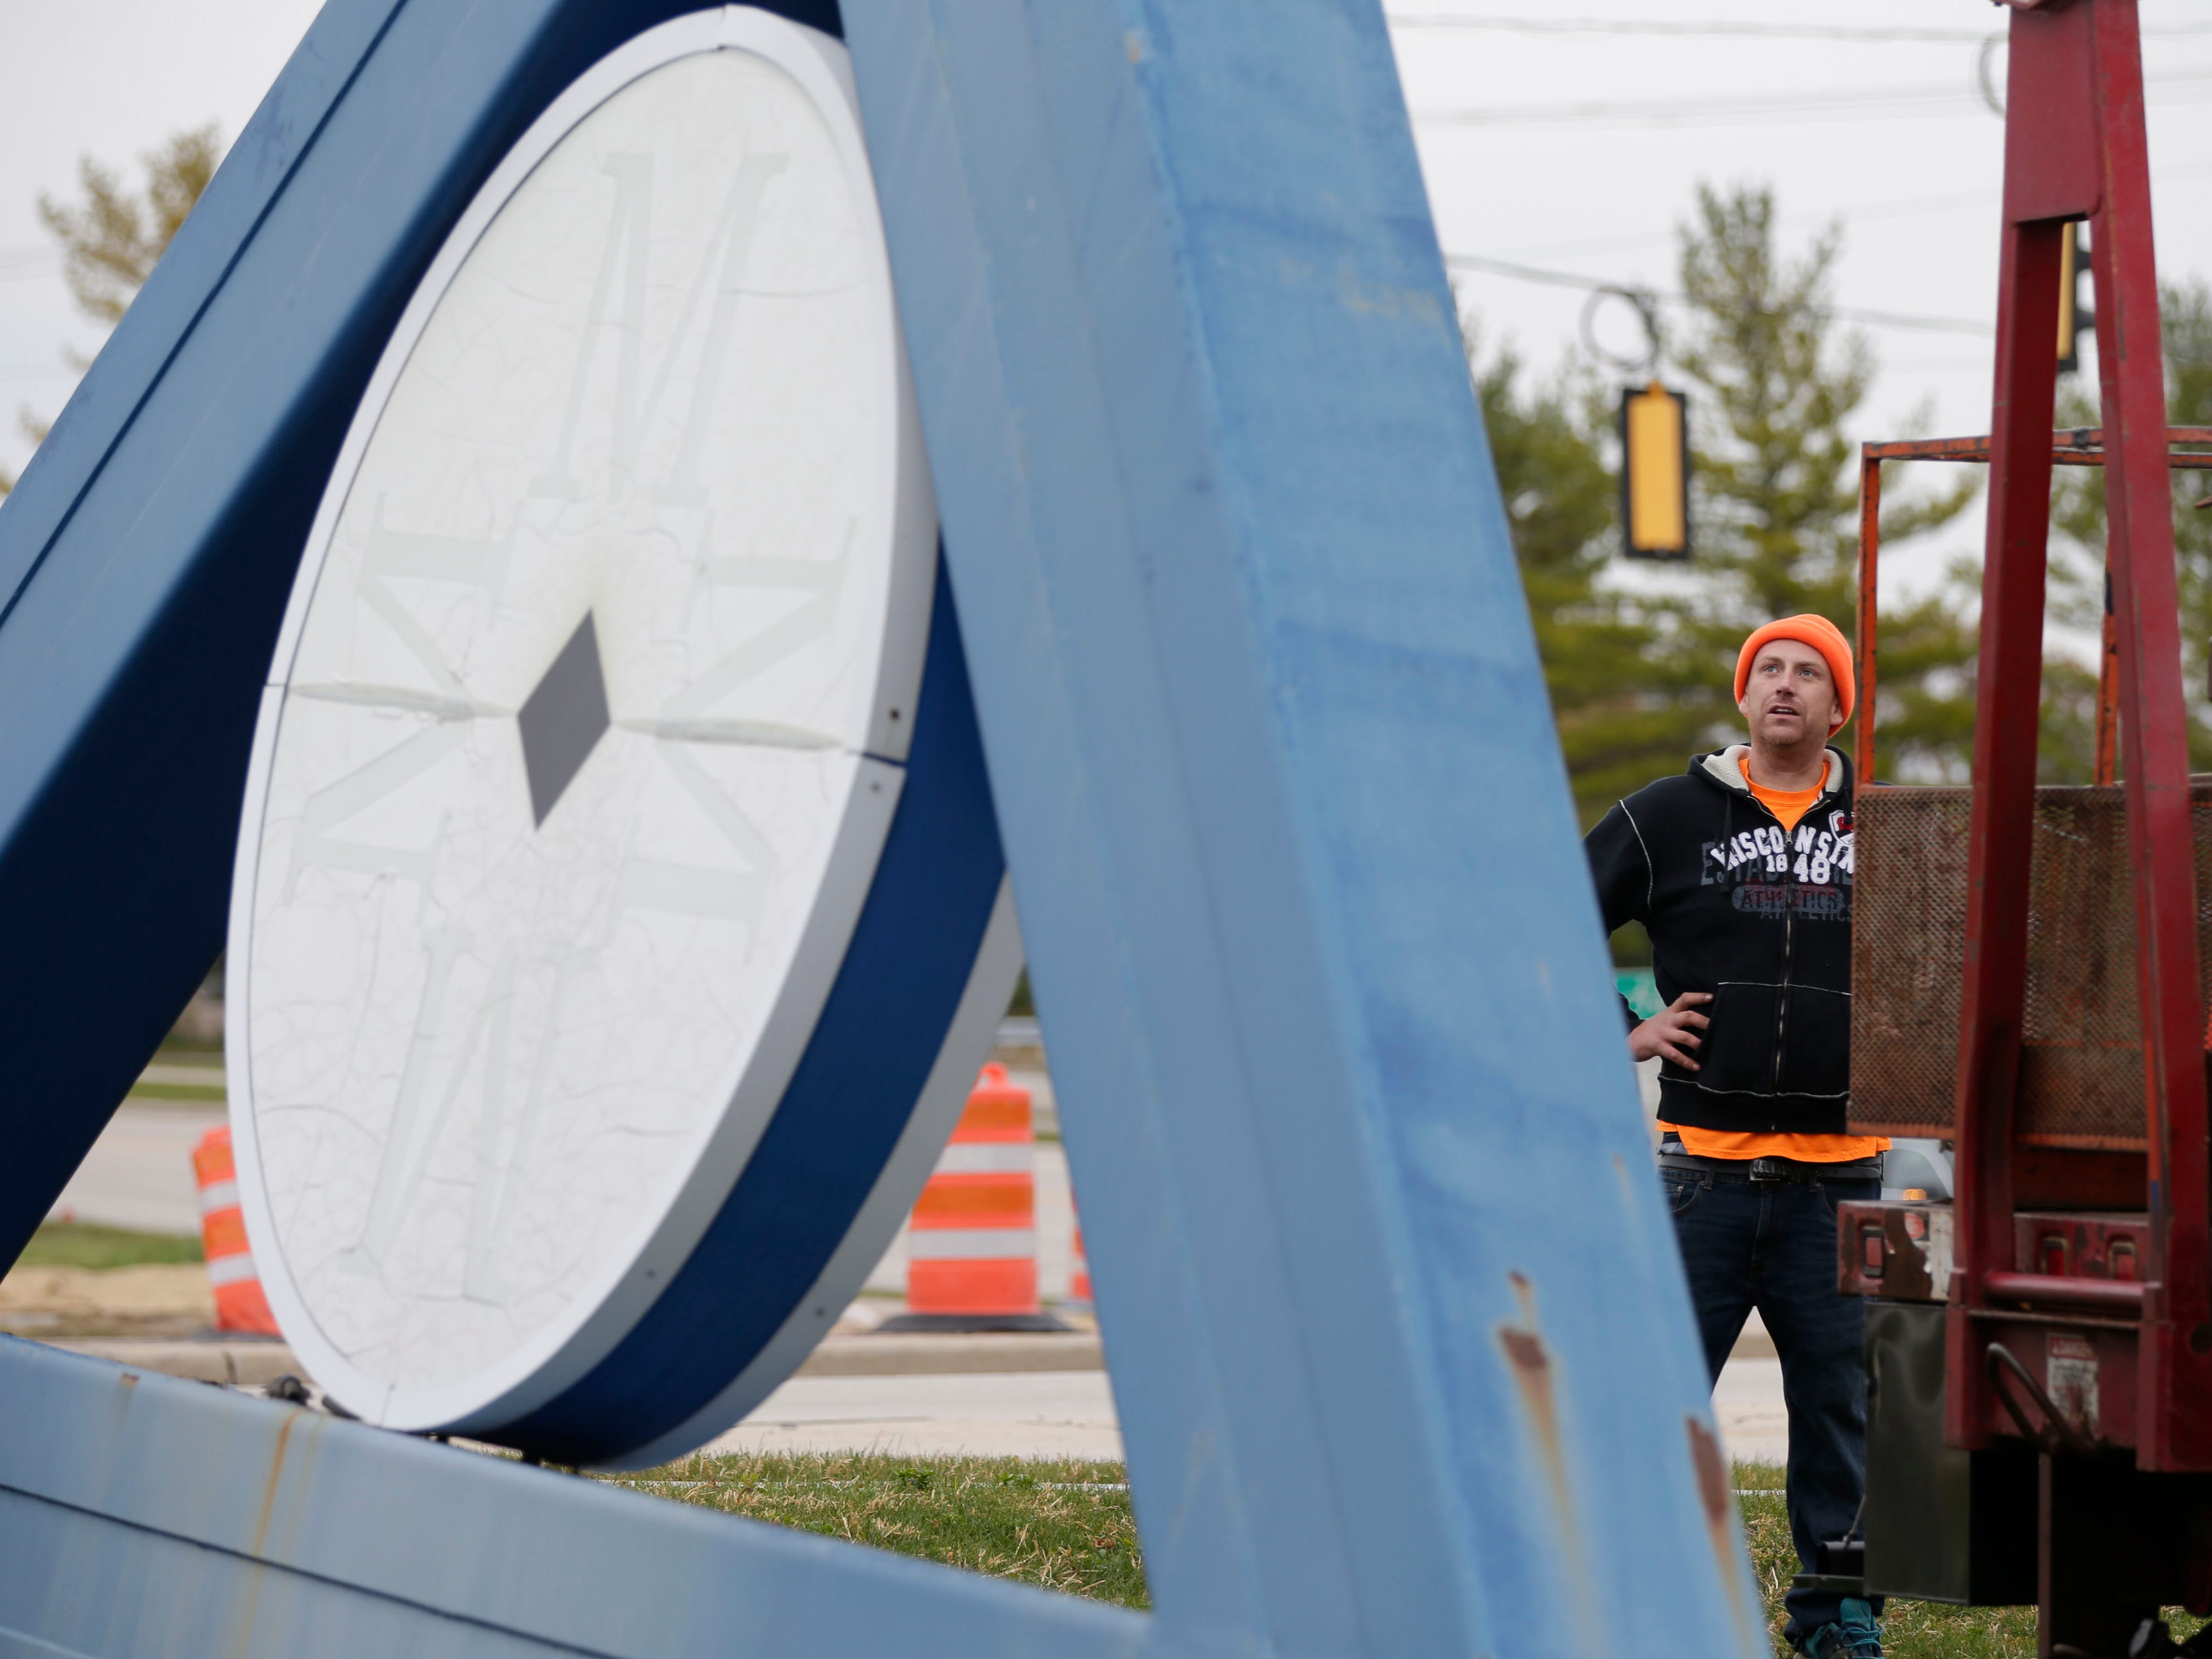 RLO Sign site supervisor Craig Ostermann watches as the old Sheboygan Memorial Mall sign is lowered to the ground, Friday, October 26, 2018, in Sheboygan, Wis.